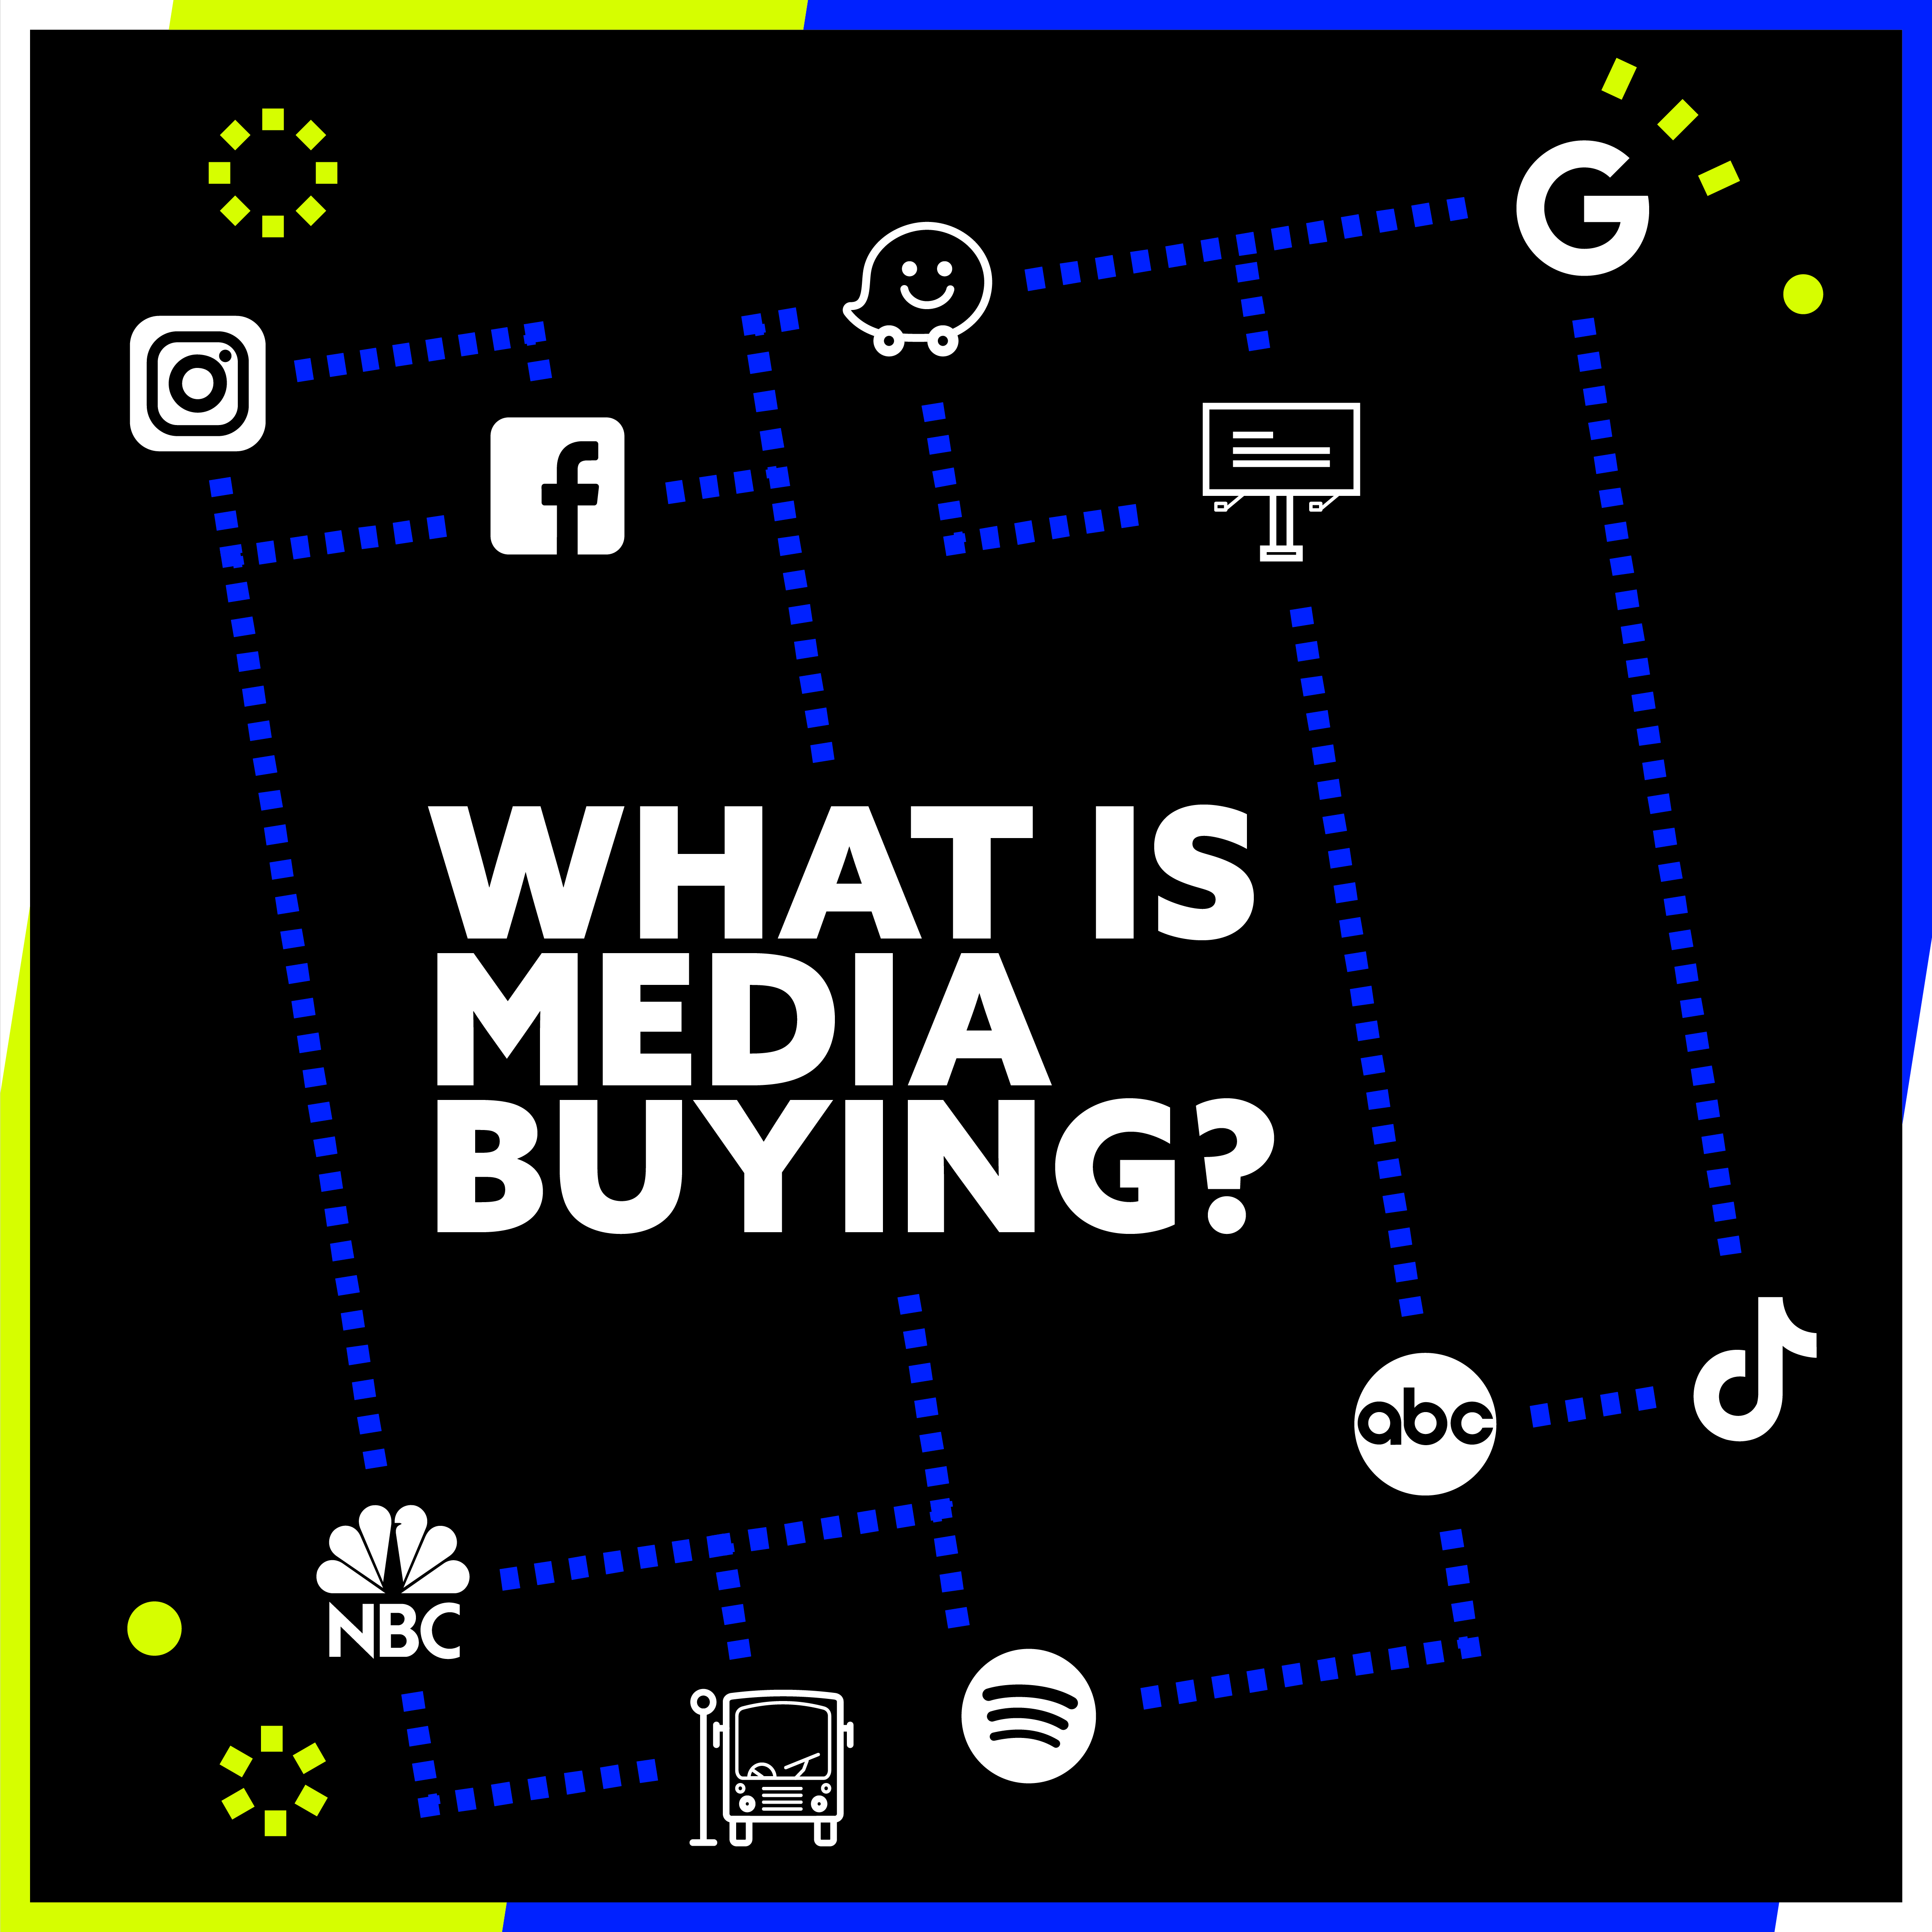 What is Media Buying?